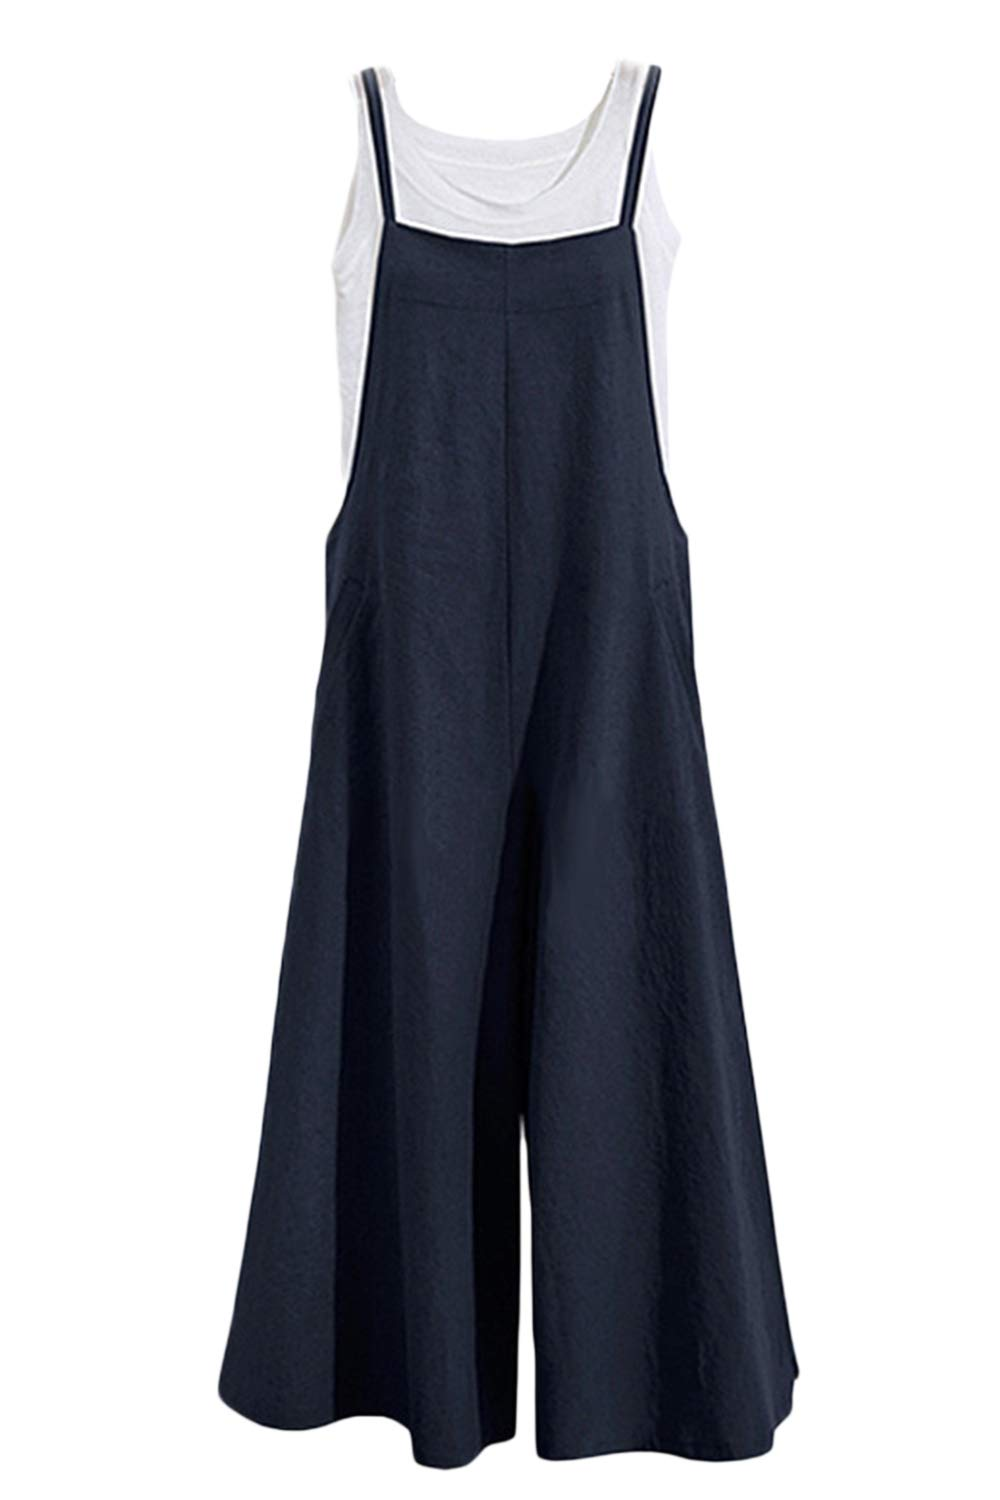 Sevozimda Womens Overalls Linen Loose Wide Leg Pants Baggy Jumpsuit and Rompers